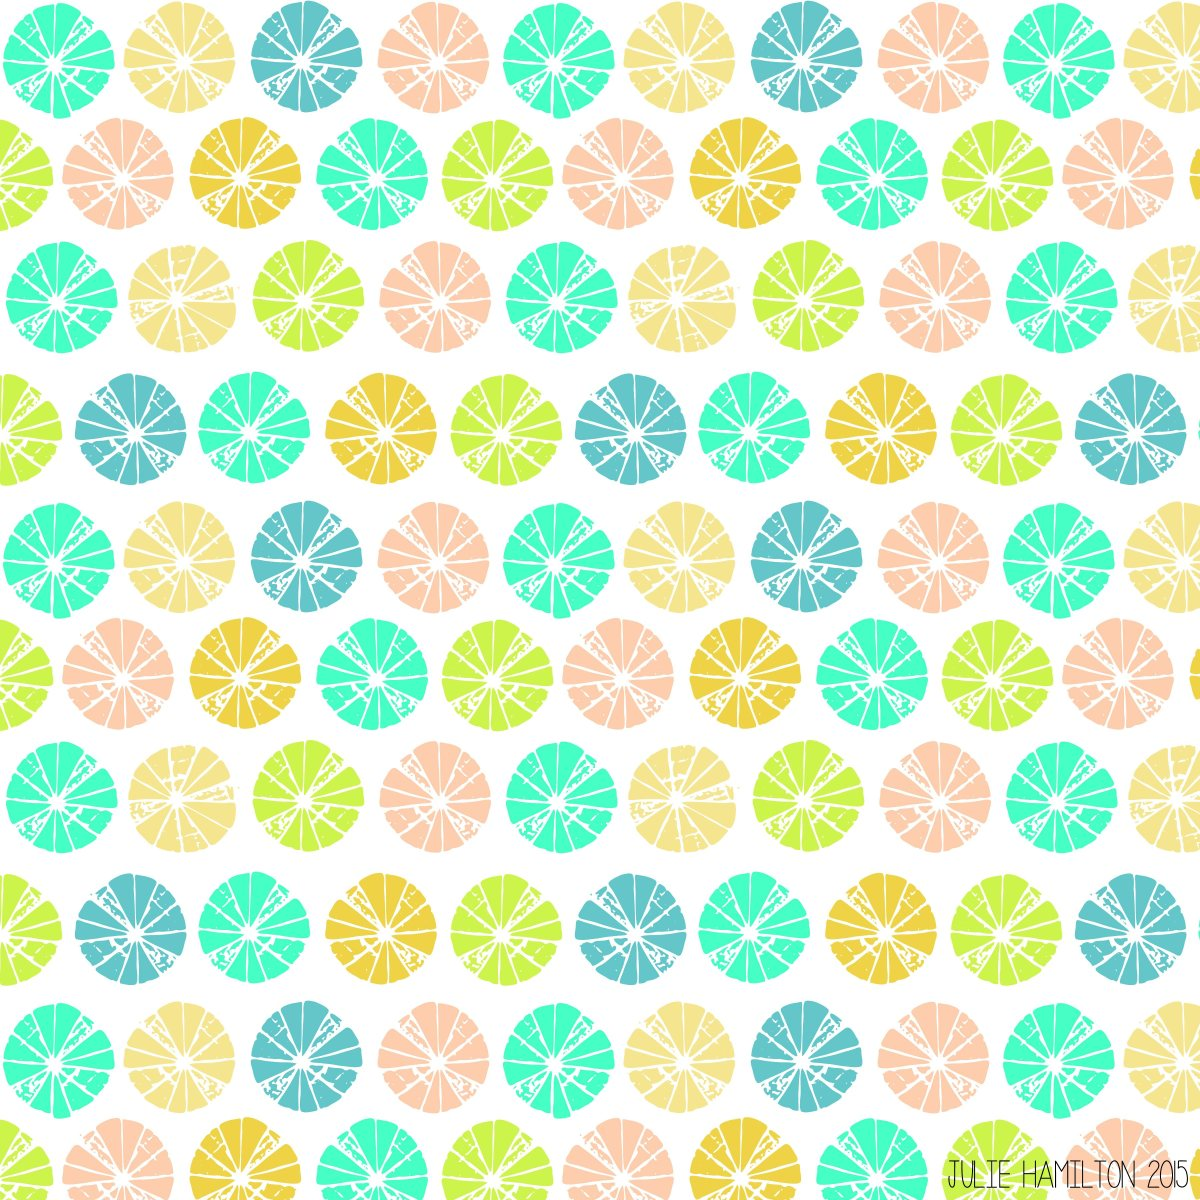 Pineapple Pattern - Julie Hamilton Creative {artistically afflicted blog}